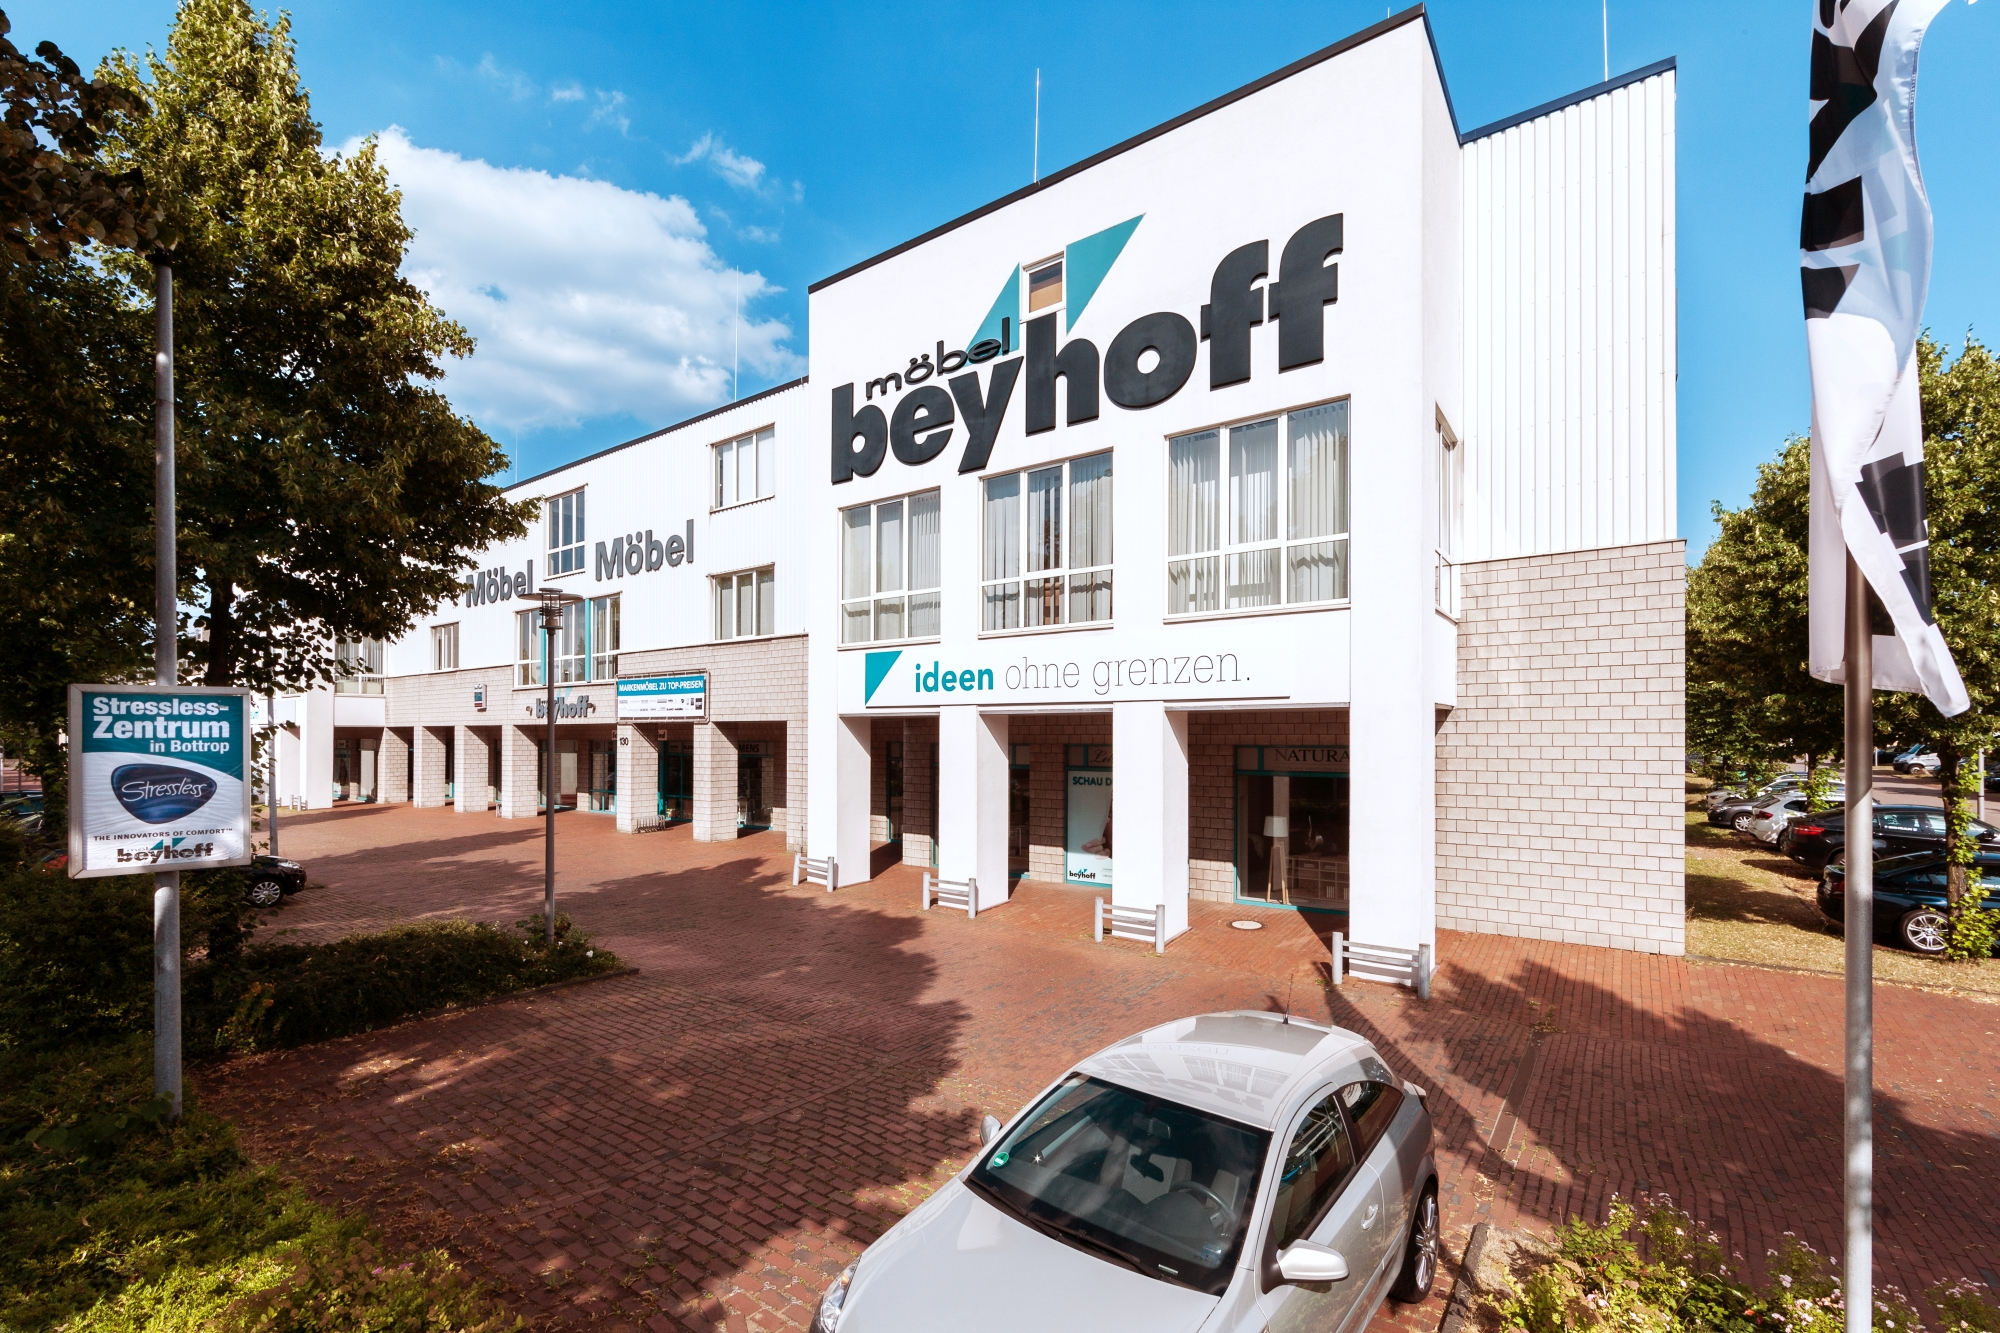 moebel-beyhoff-gmbh--co-kg-bottrop banner